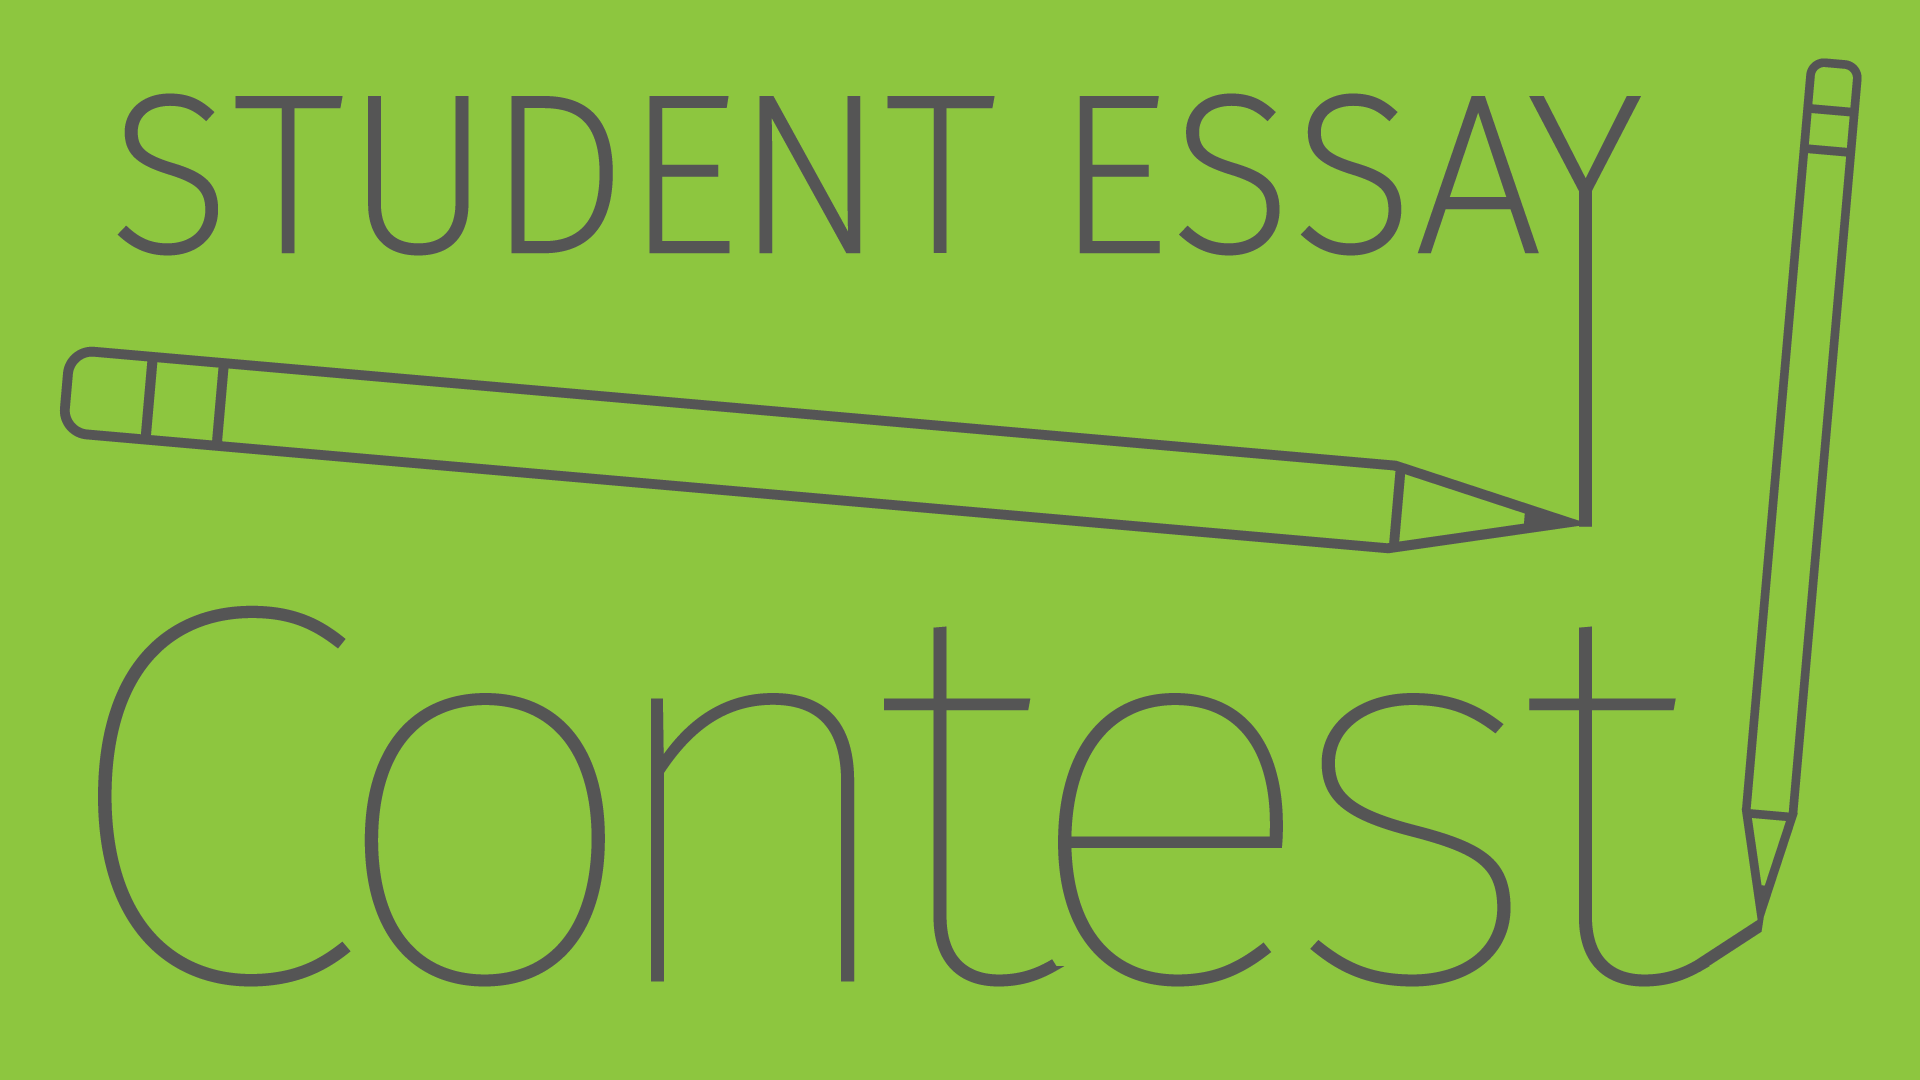 federal reserve bank of minneapolis essay contest for house federal reserve bank of minneapolis essay contest for house 1